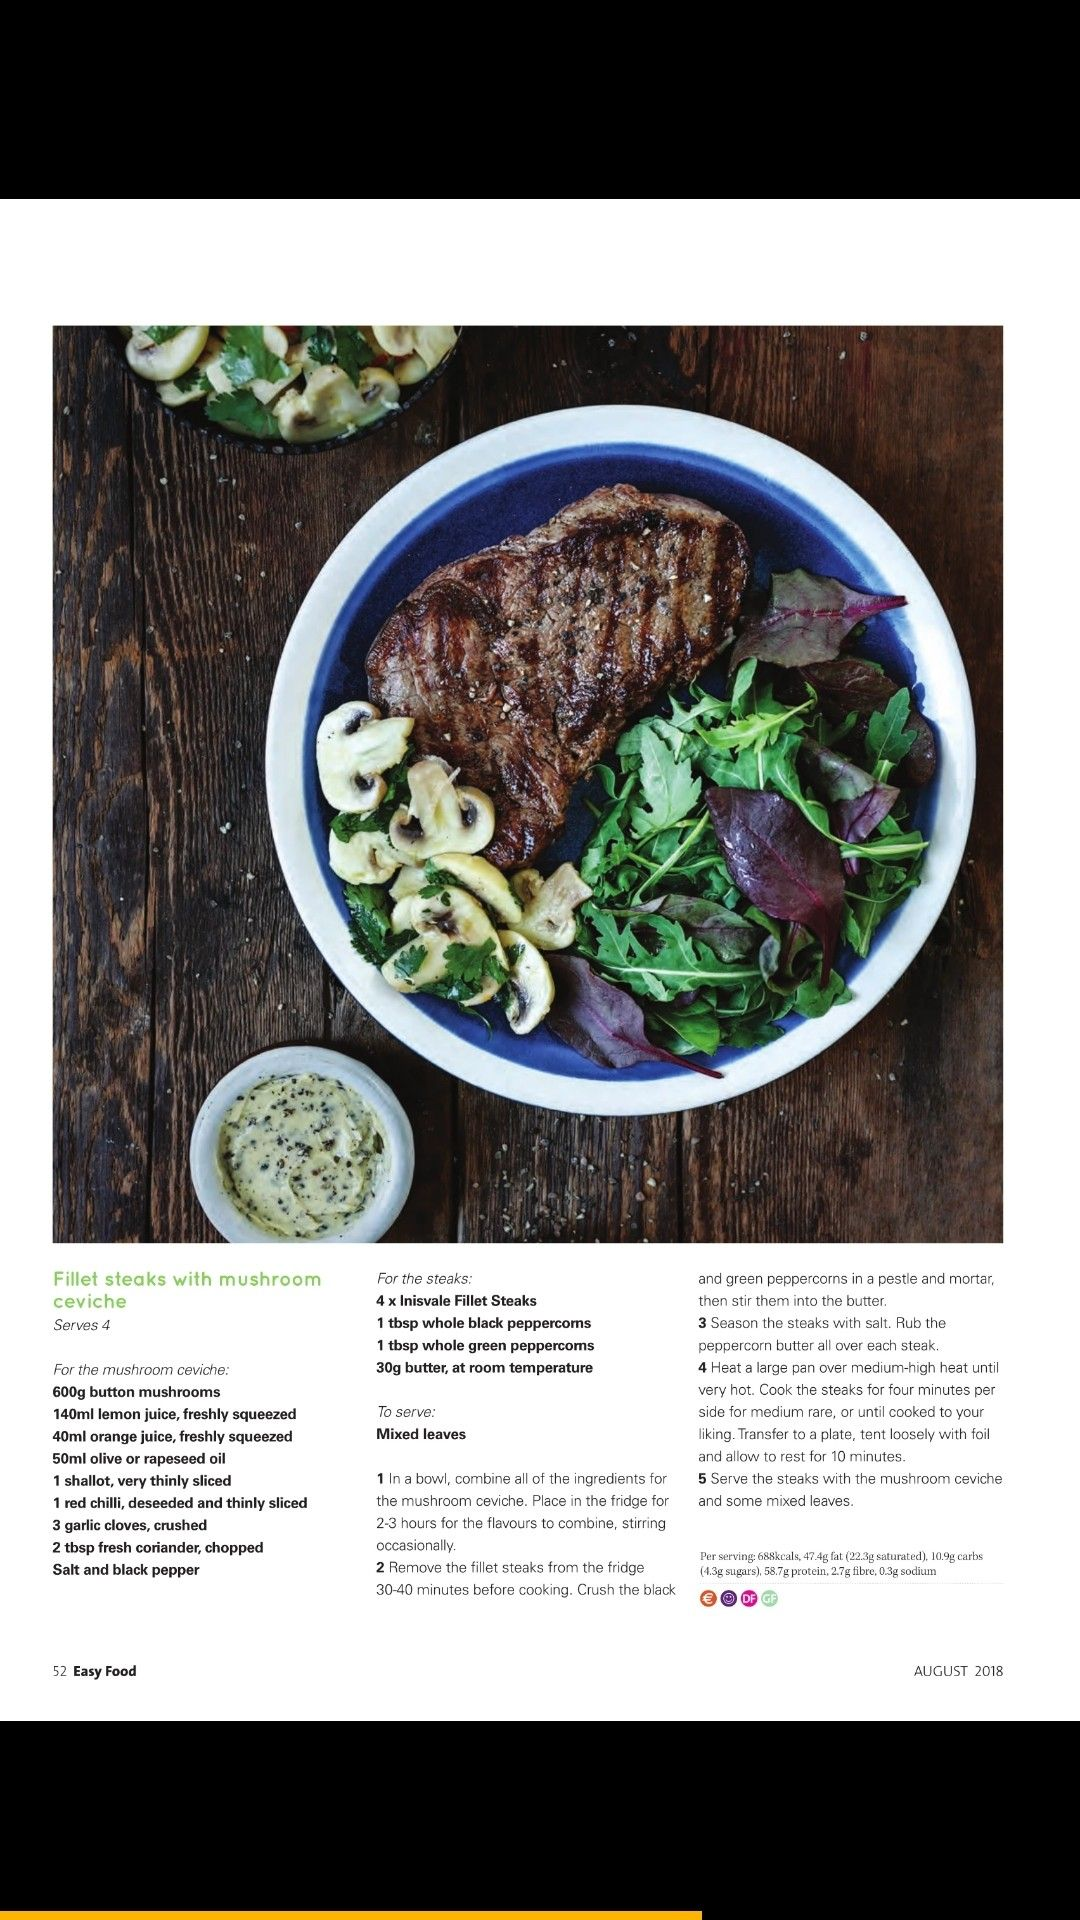 Fillet Steaks With Mushroom Ceviche Beef Recipes Fillet Steak Steak And Mushrooms